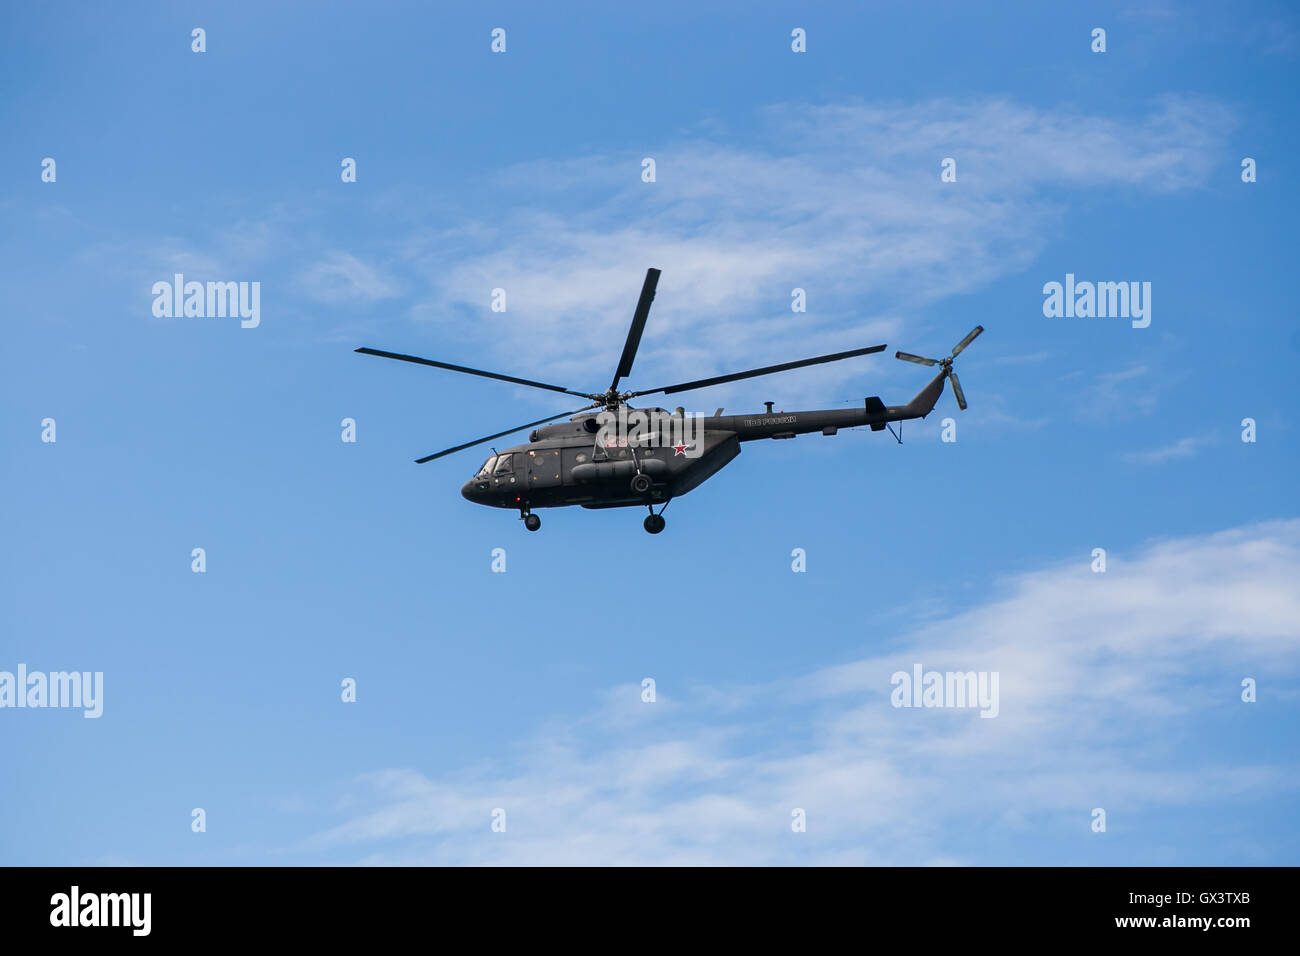 Russian military helicopter MI-8 in the blue sky - Stock Image